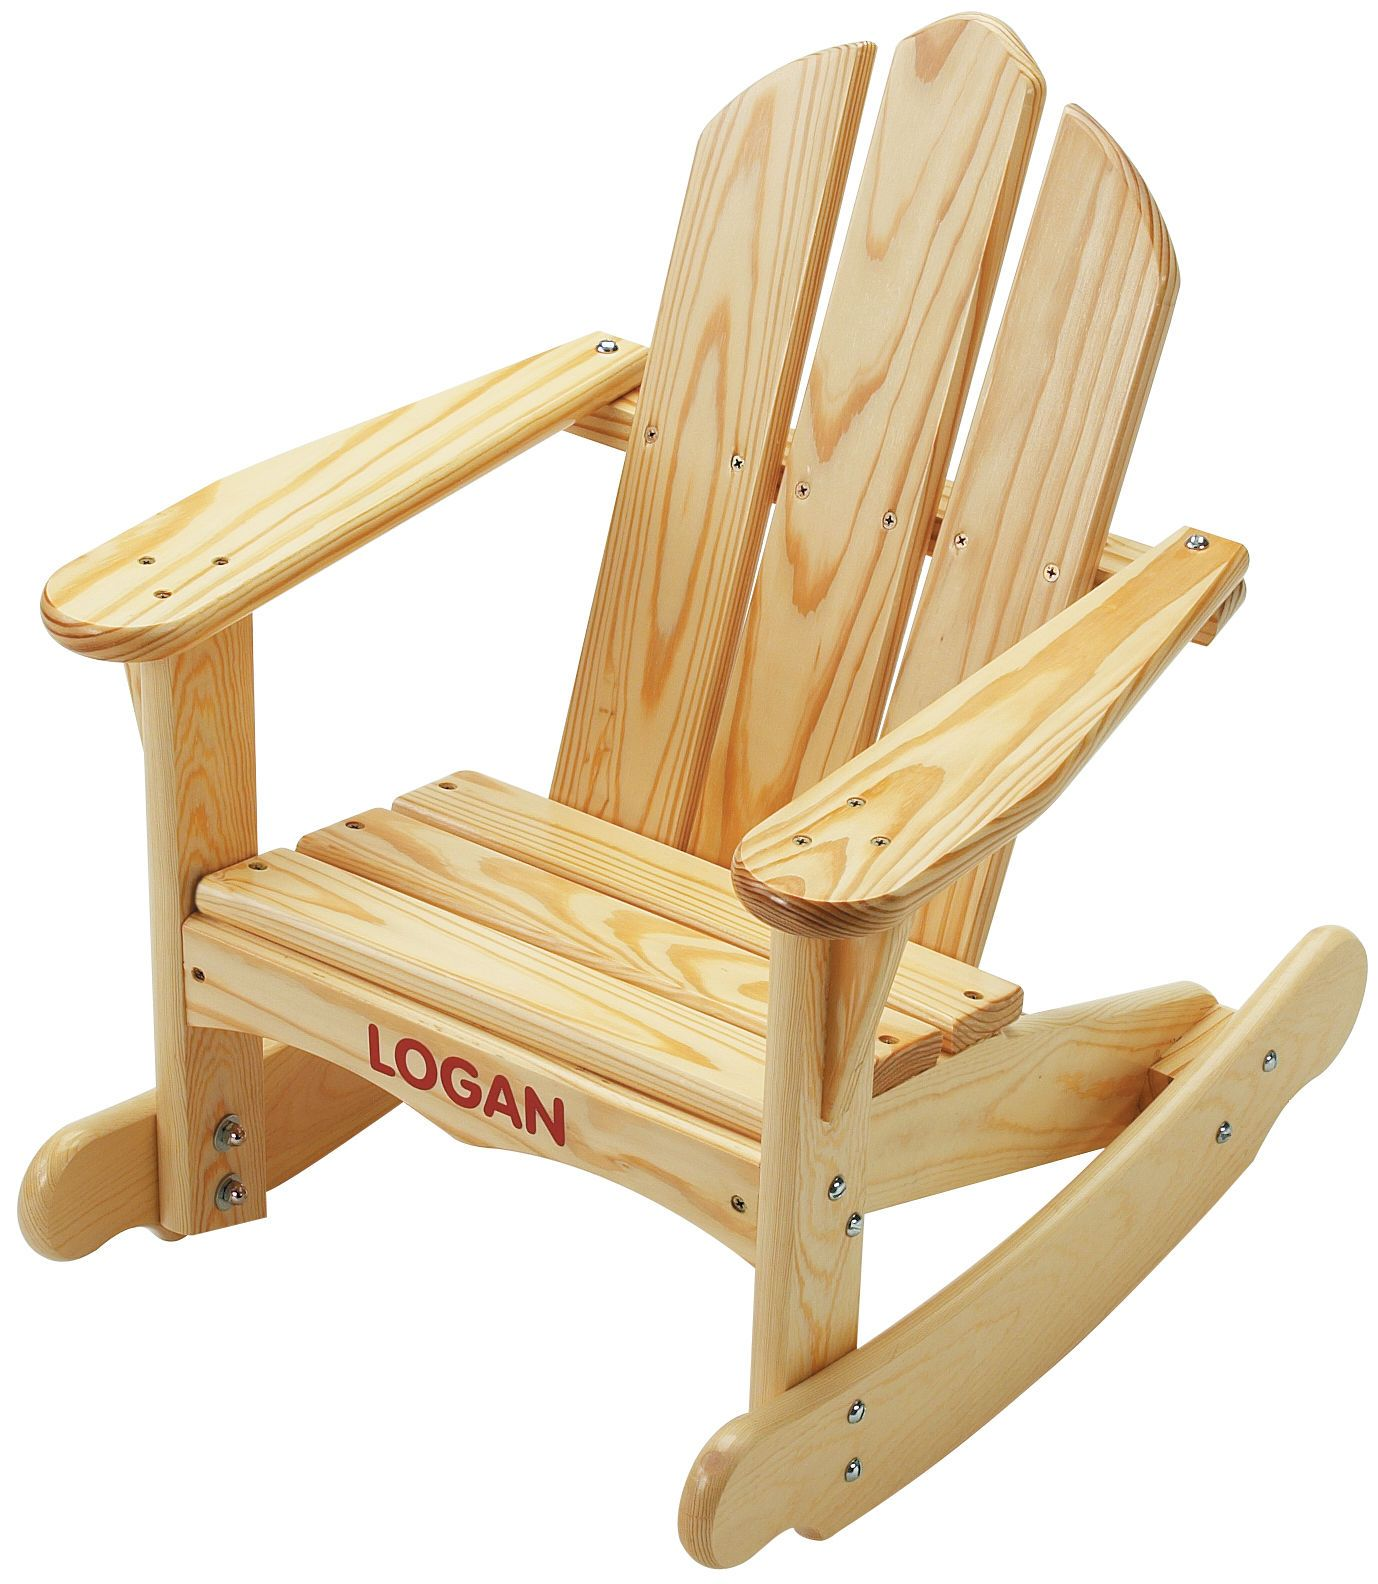 Wooden Chairs Adirondack Chair Plans Fr Furniture And House